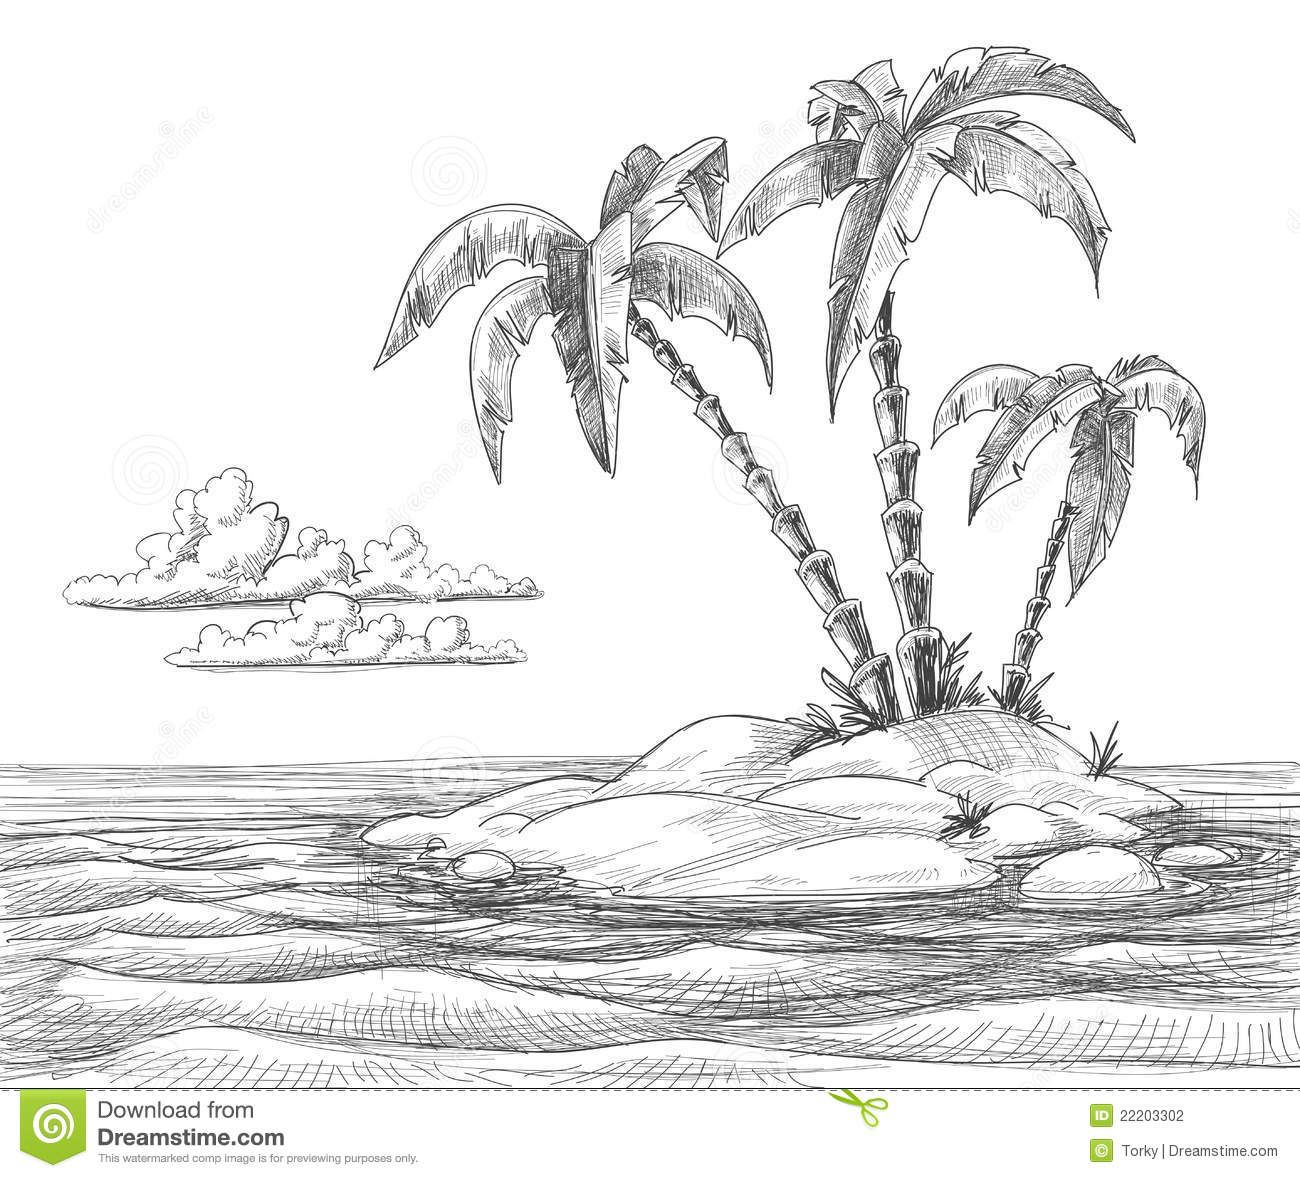 Ocean landscape pencil drawings bing images teardrop landscape